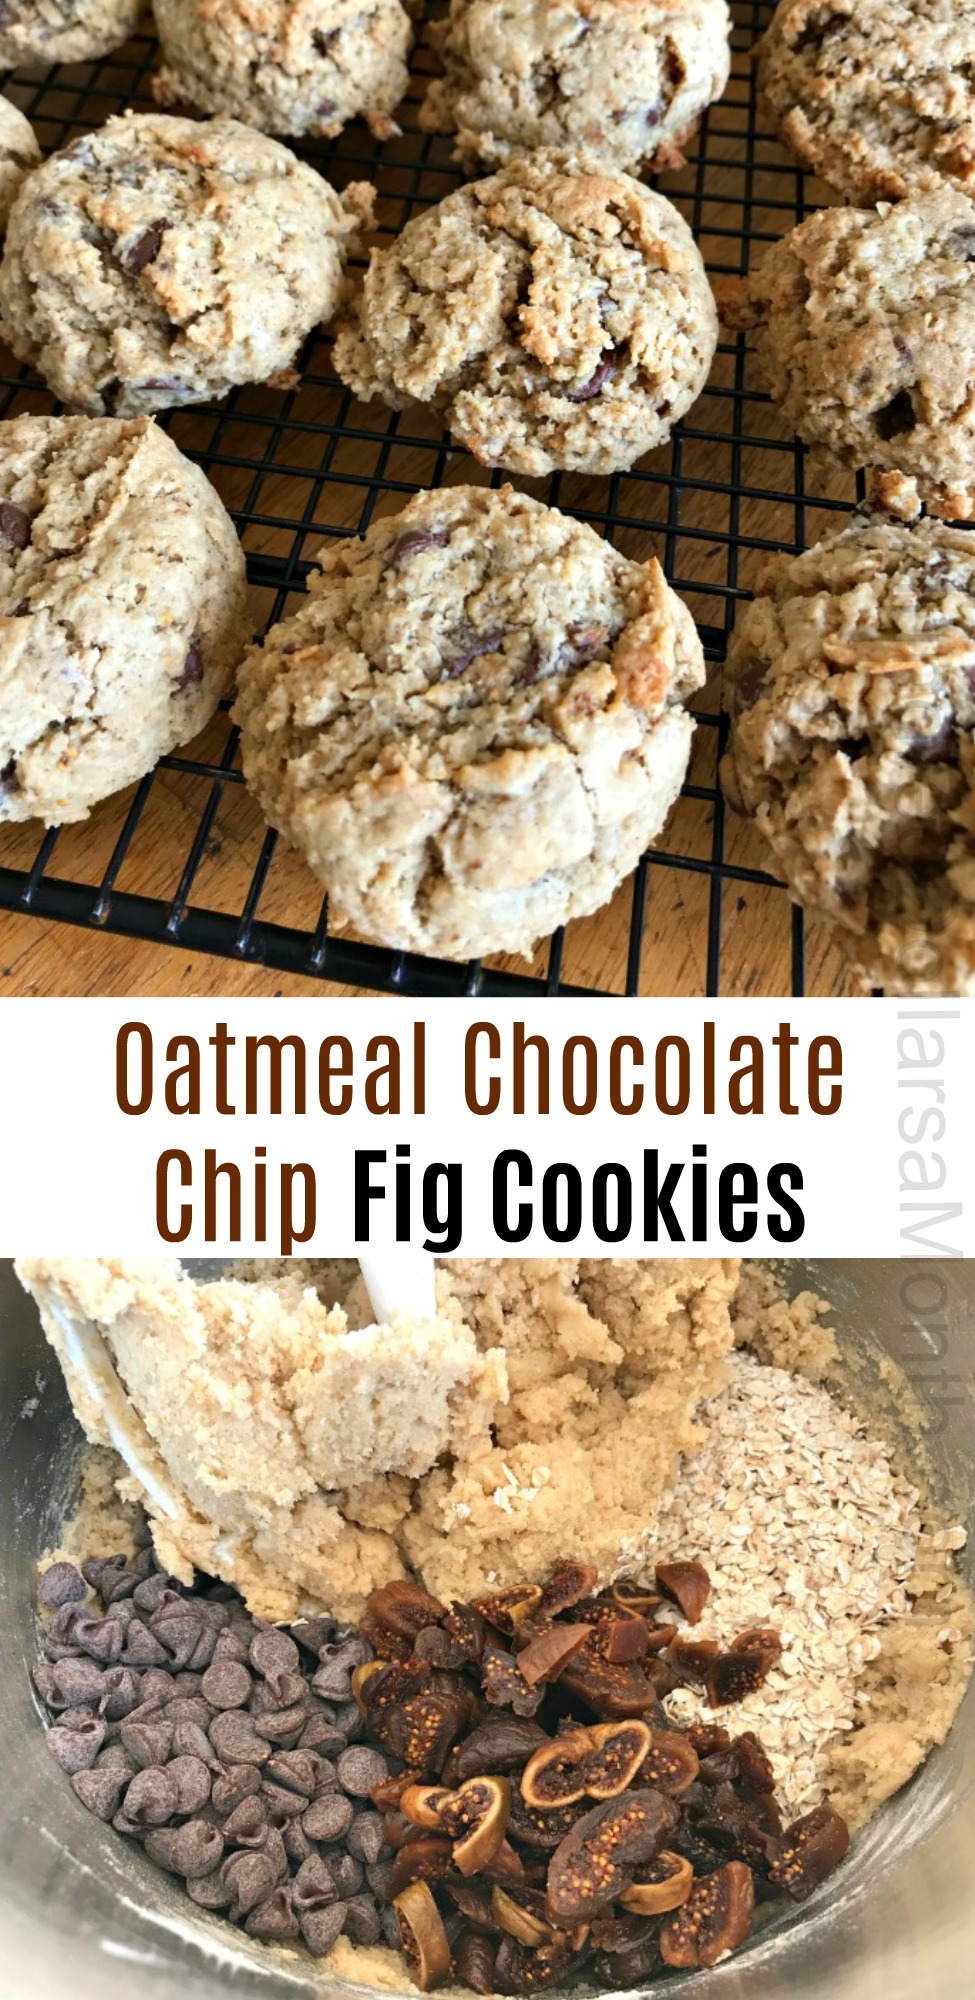 Oatmeal Chocolate Chip Fig Cookies